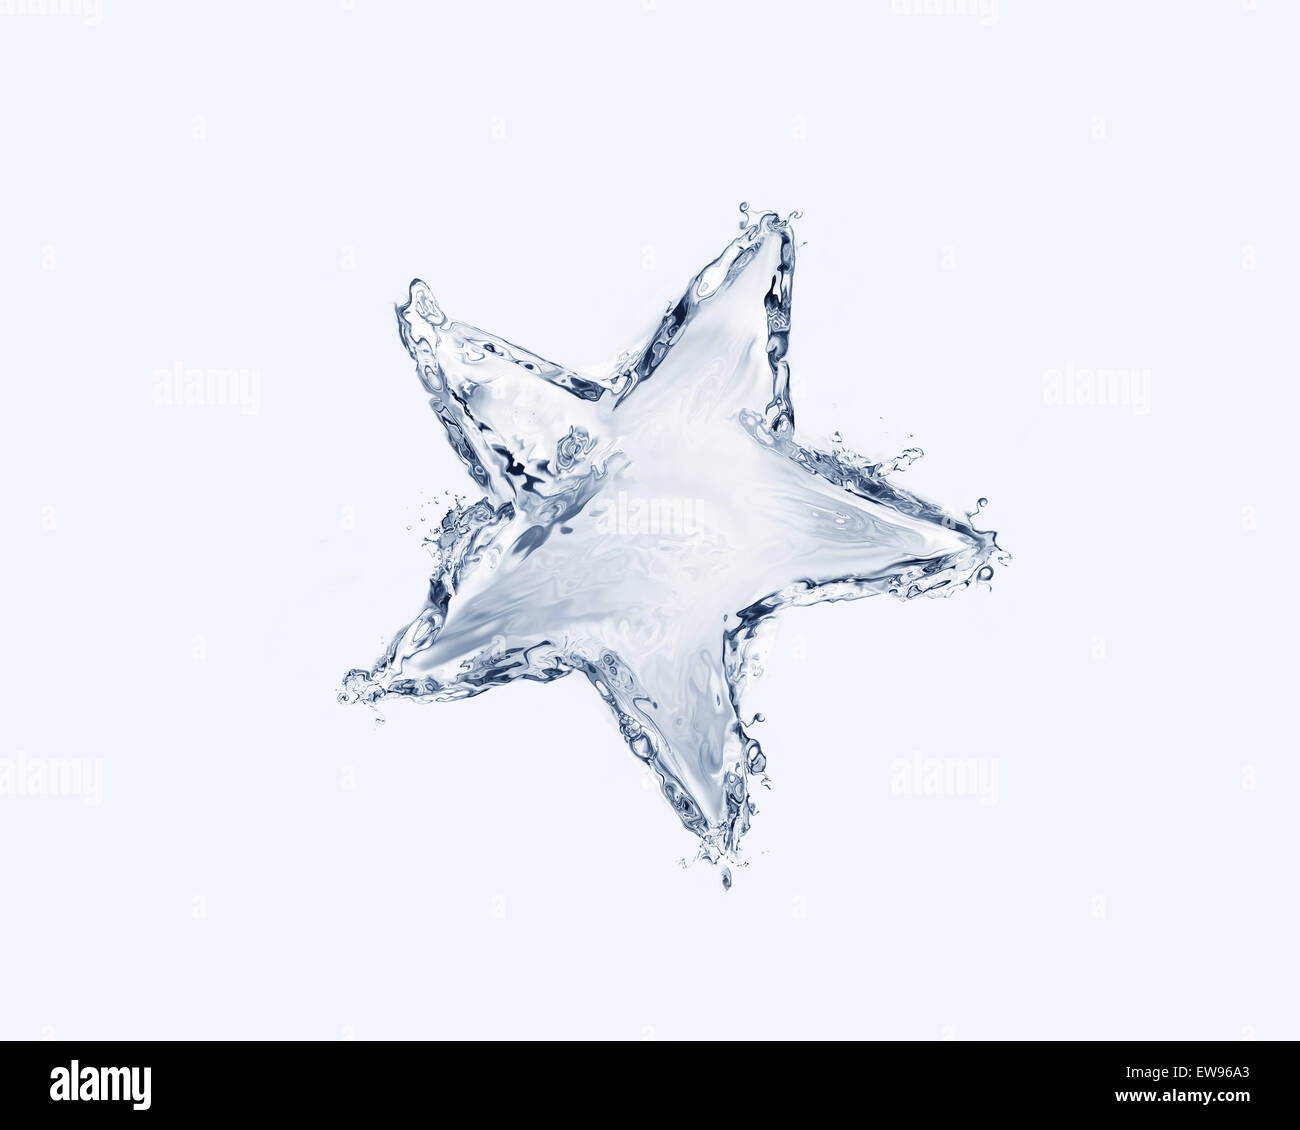 A blue star made of water. - Stock Image